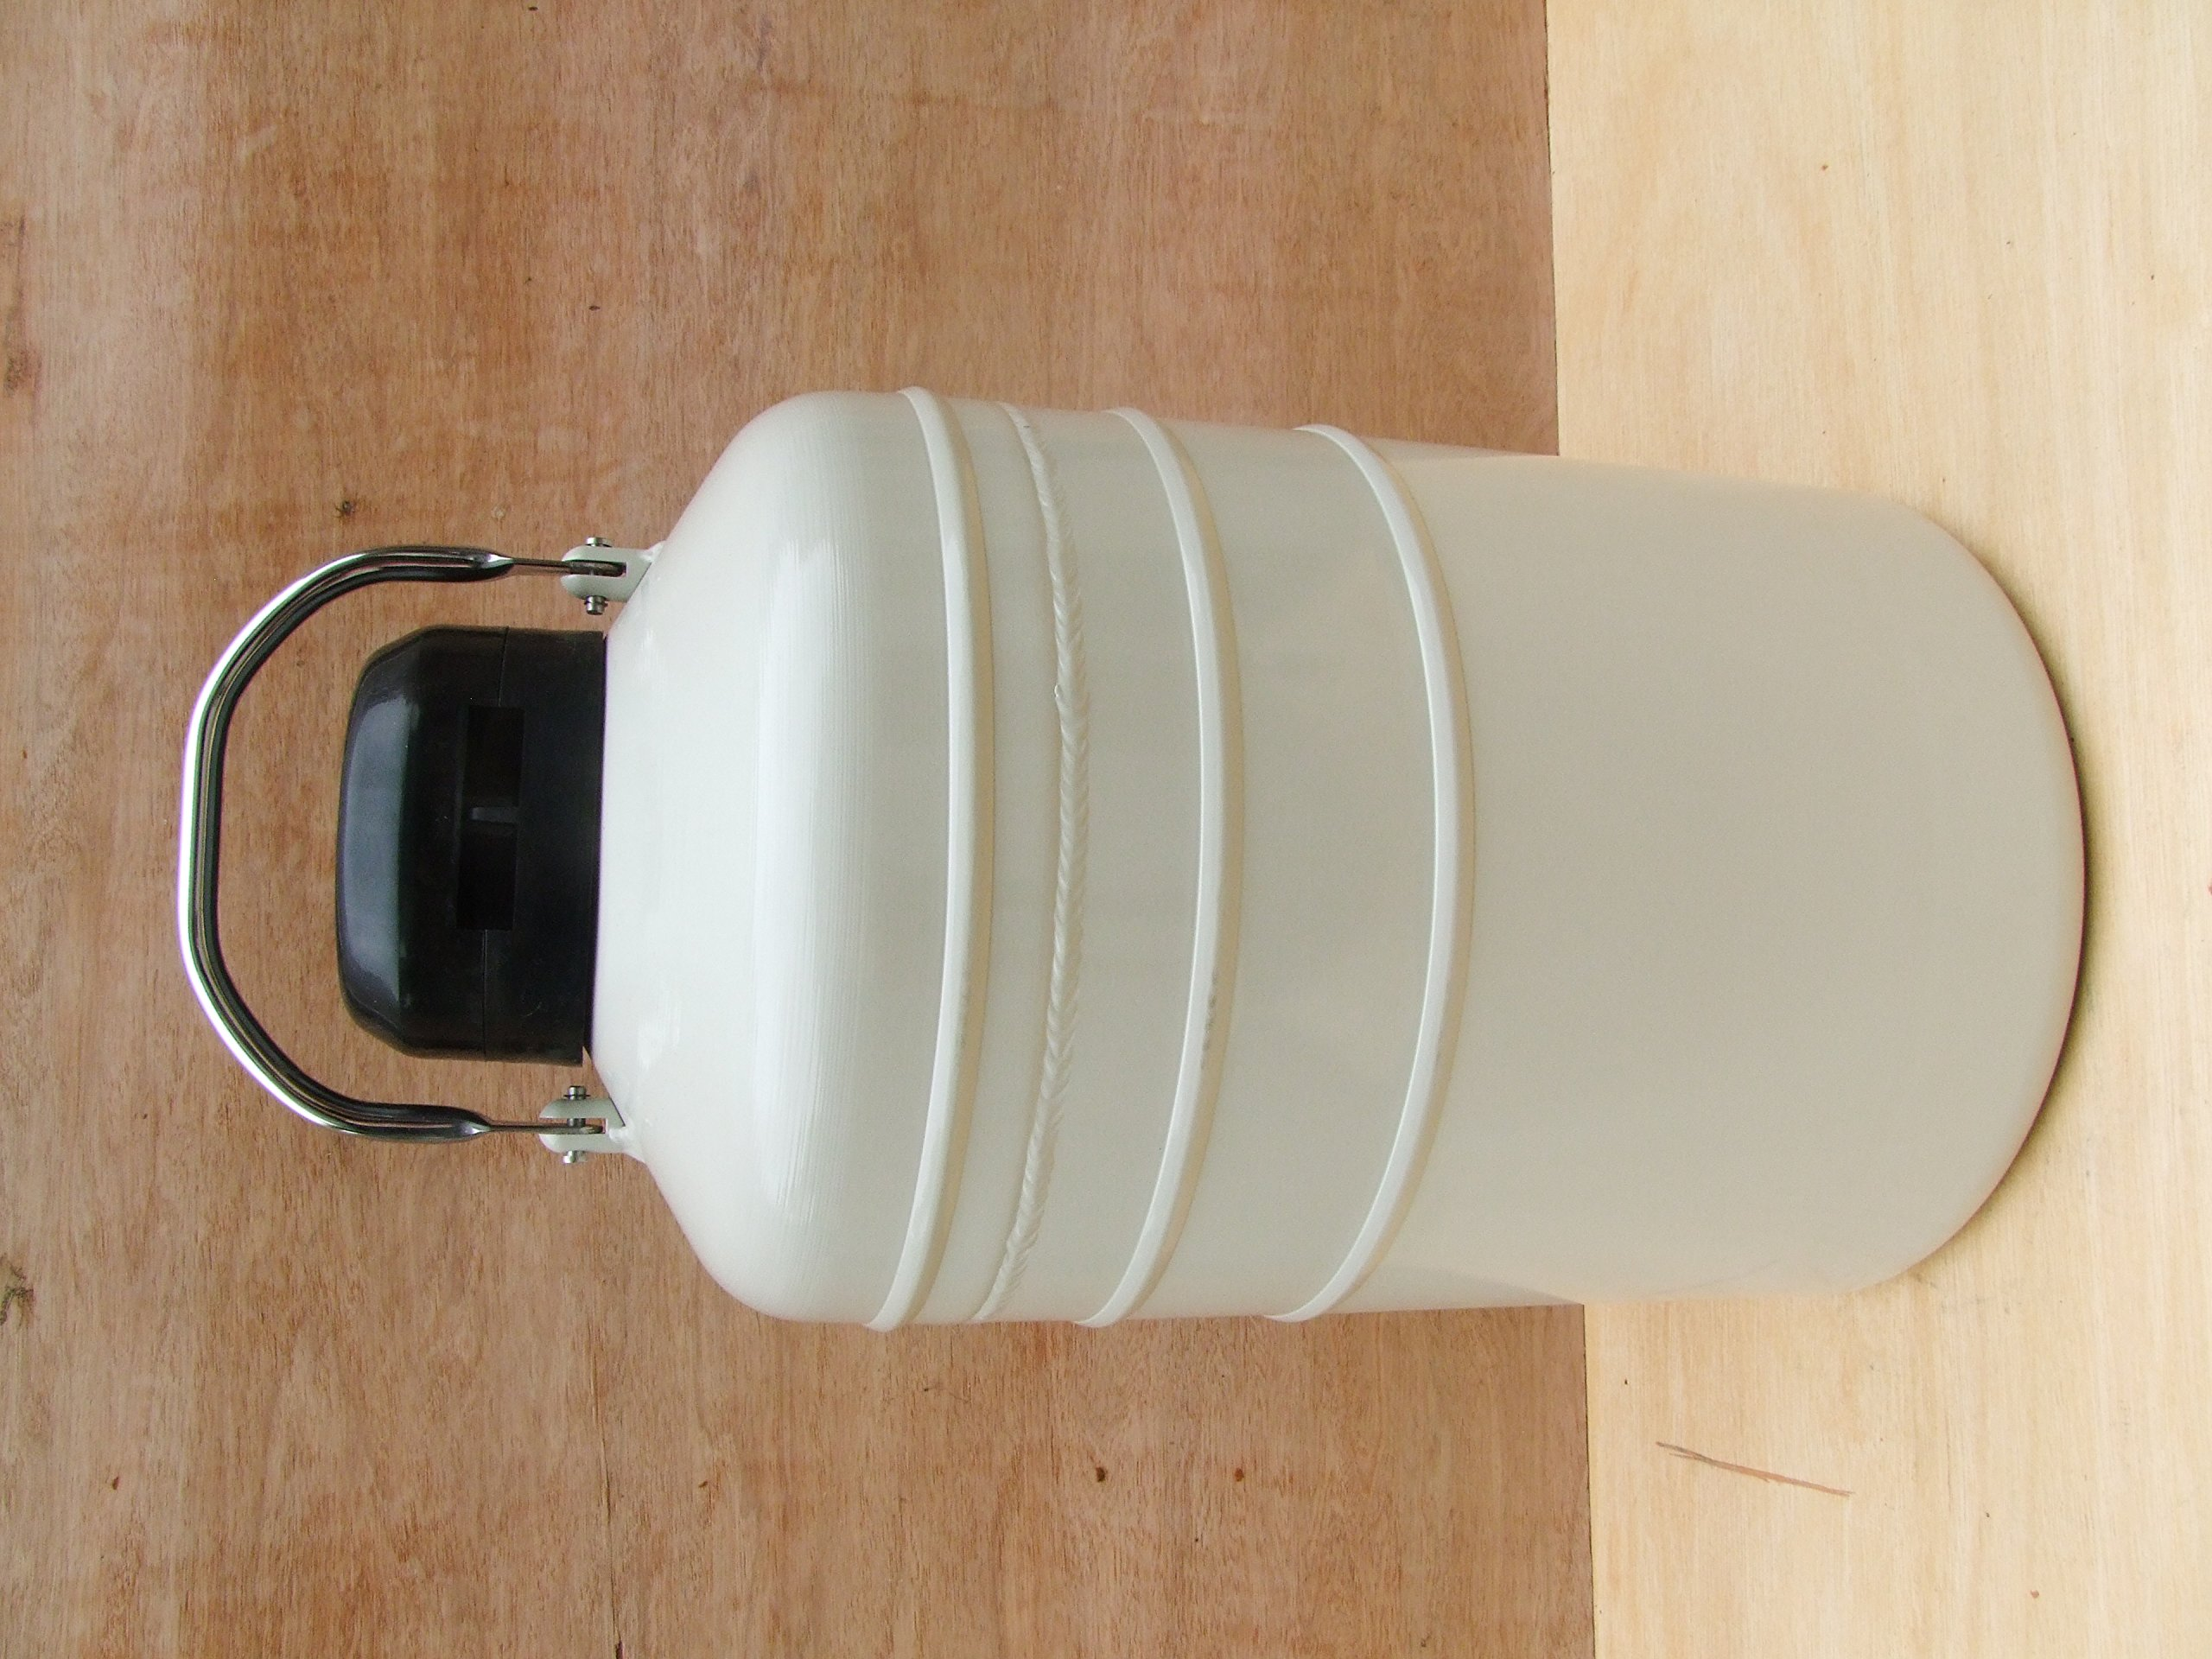 10 L Cryogenic Container Liquid Nitrogen Ln2 Tank with Straps and Carry Bag by HardwareFactoryStore.com (Image #3)